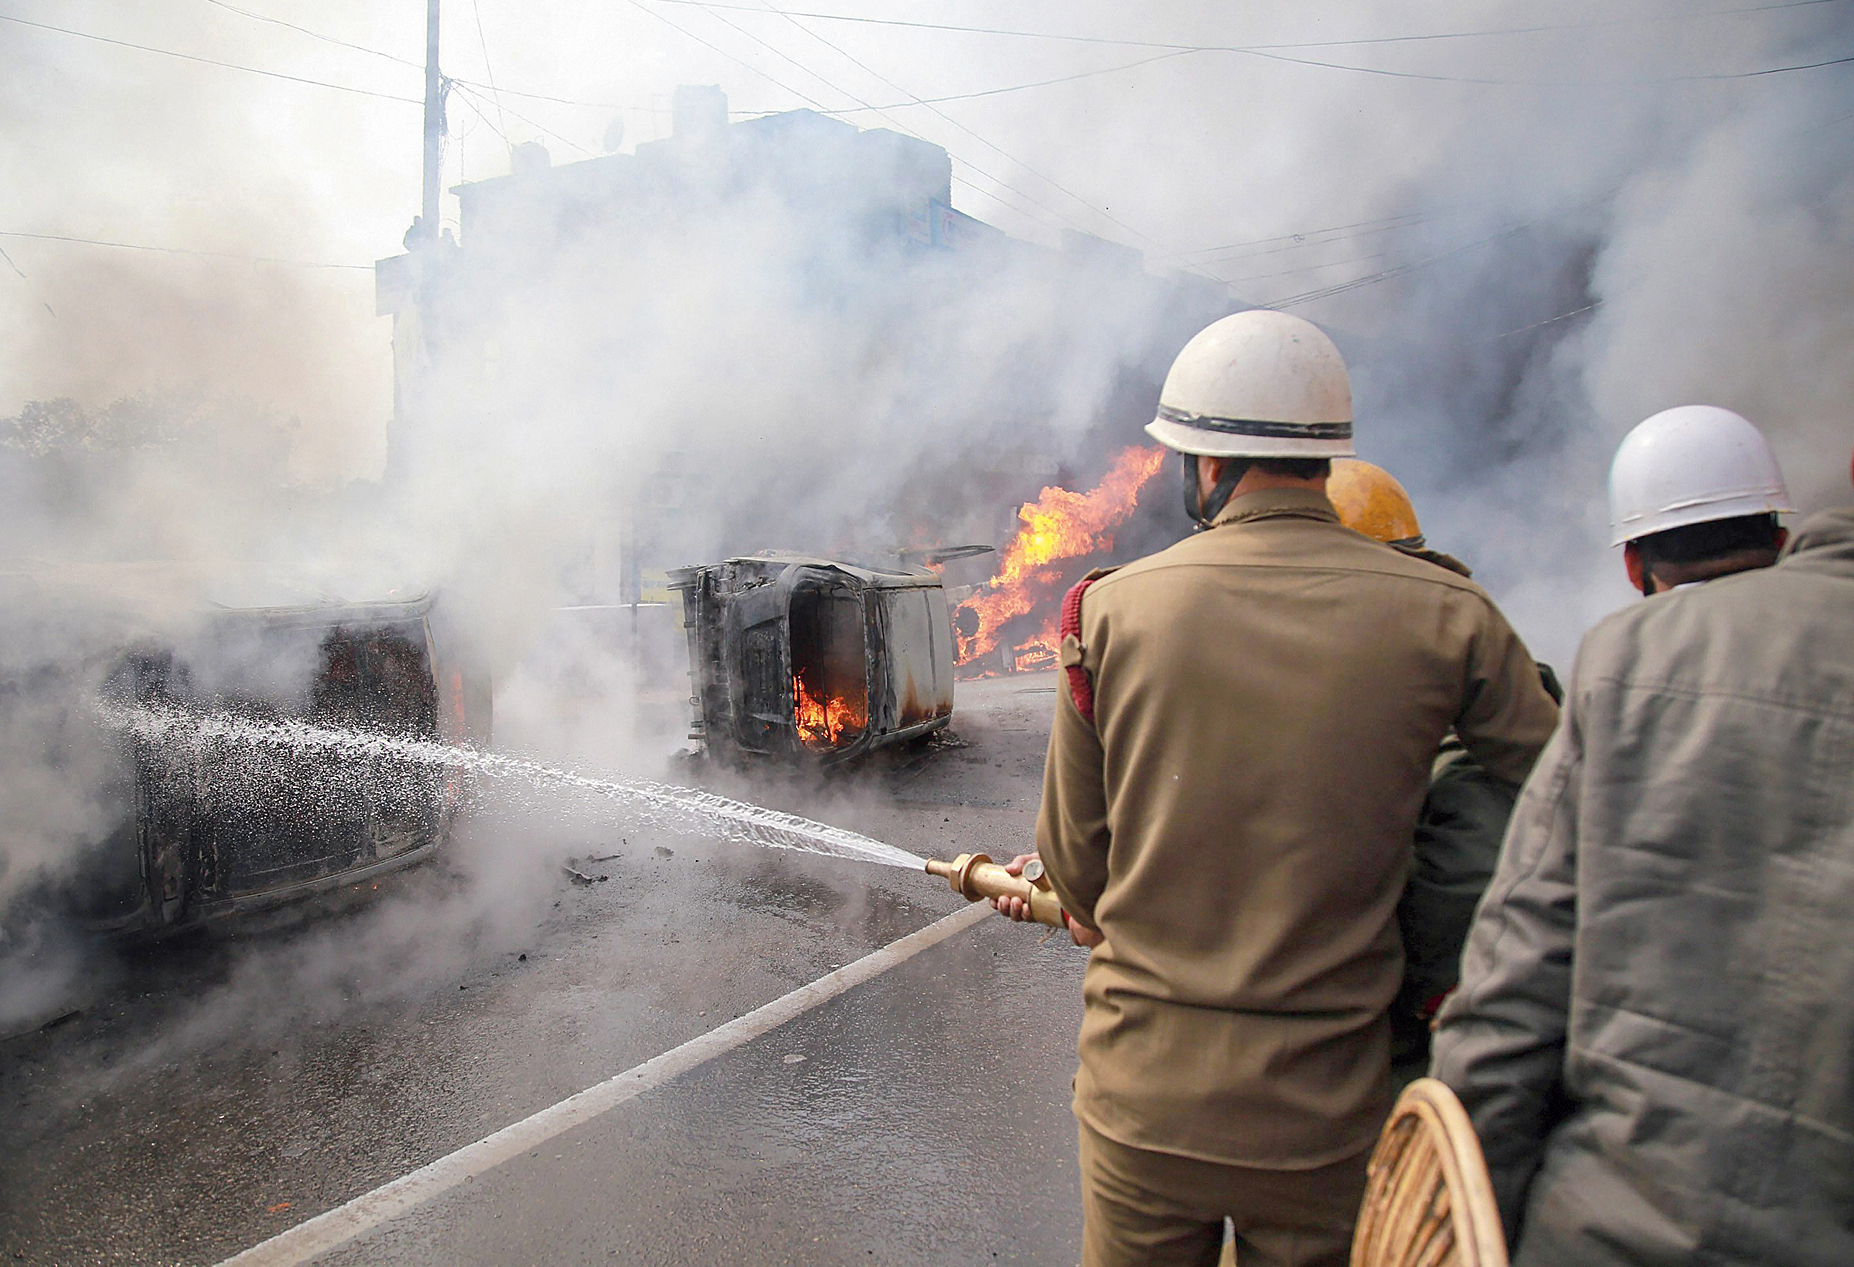 Firemen spray water to douse the flames on the vehicles that were set ablaze during a protest in Jammu on Friday.